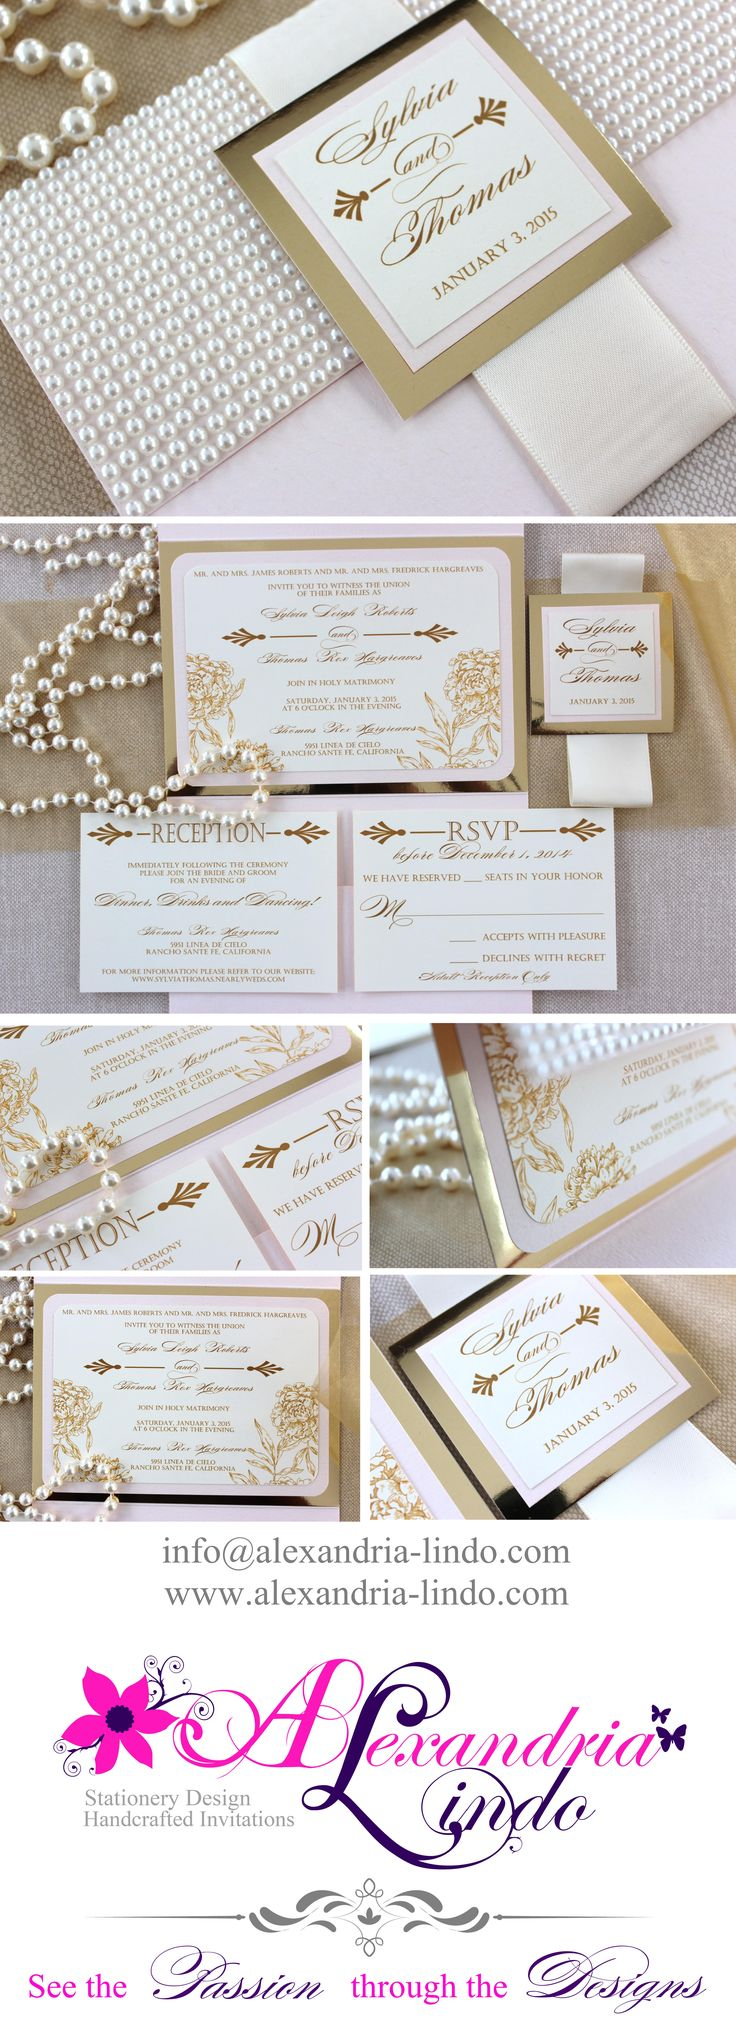 139 Best Custom Stationery And So Much More Images On Pinterest